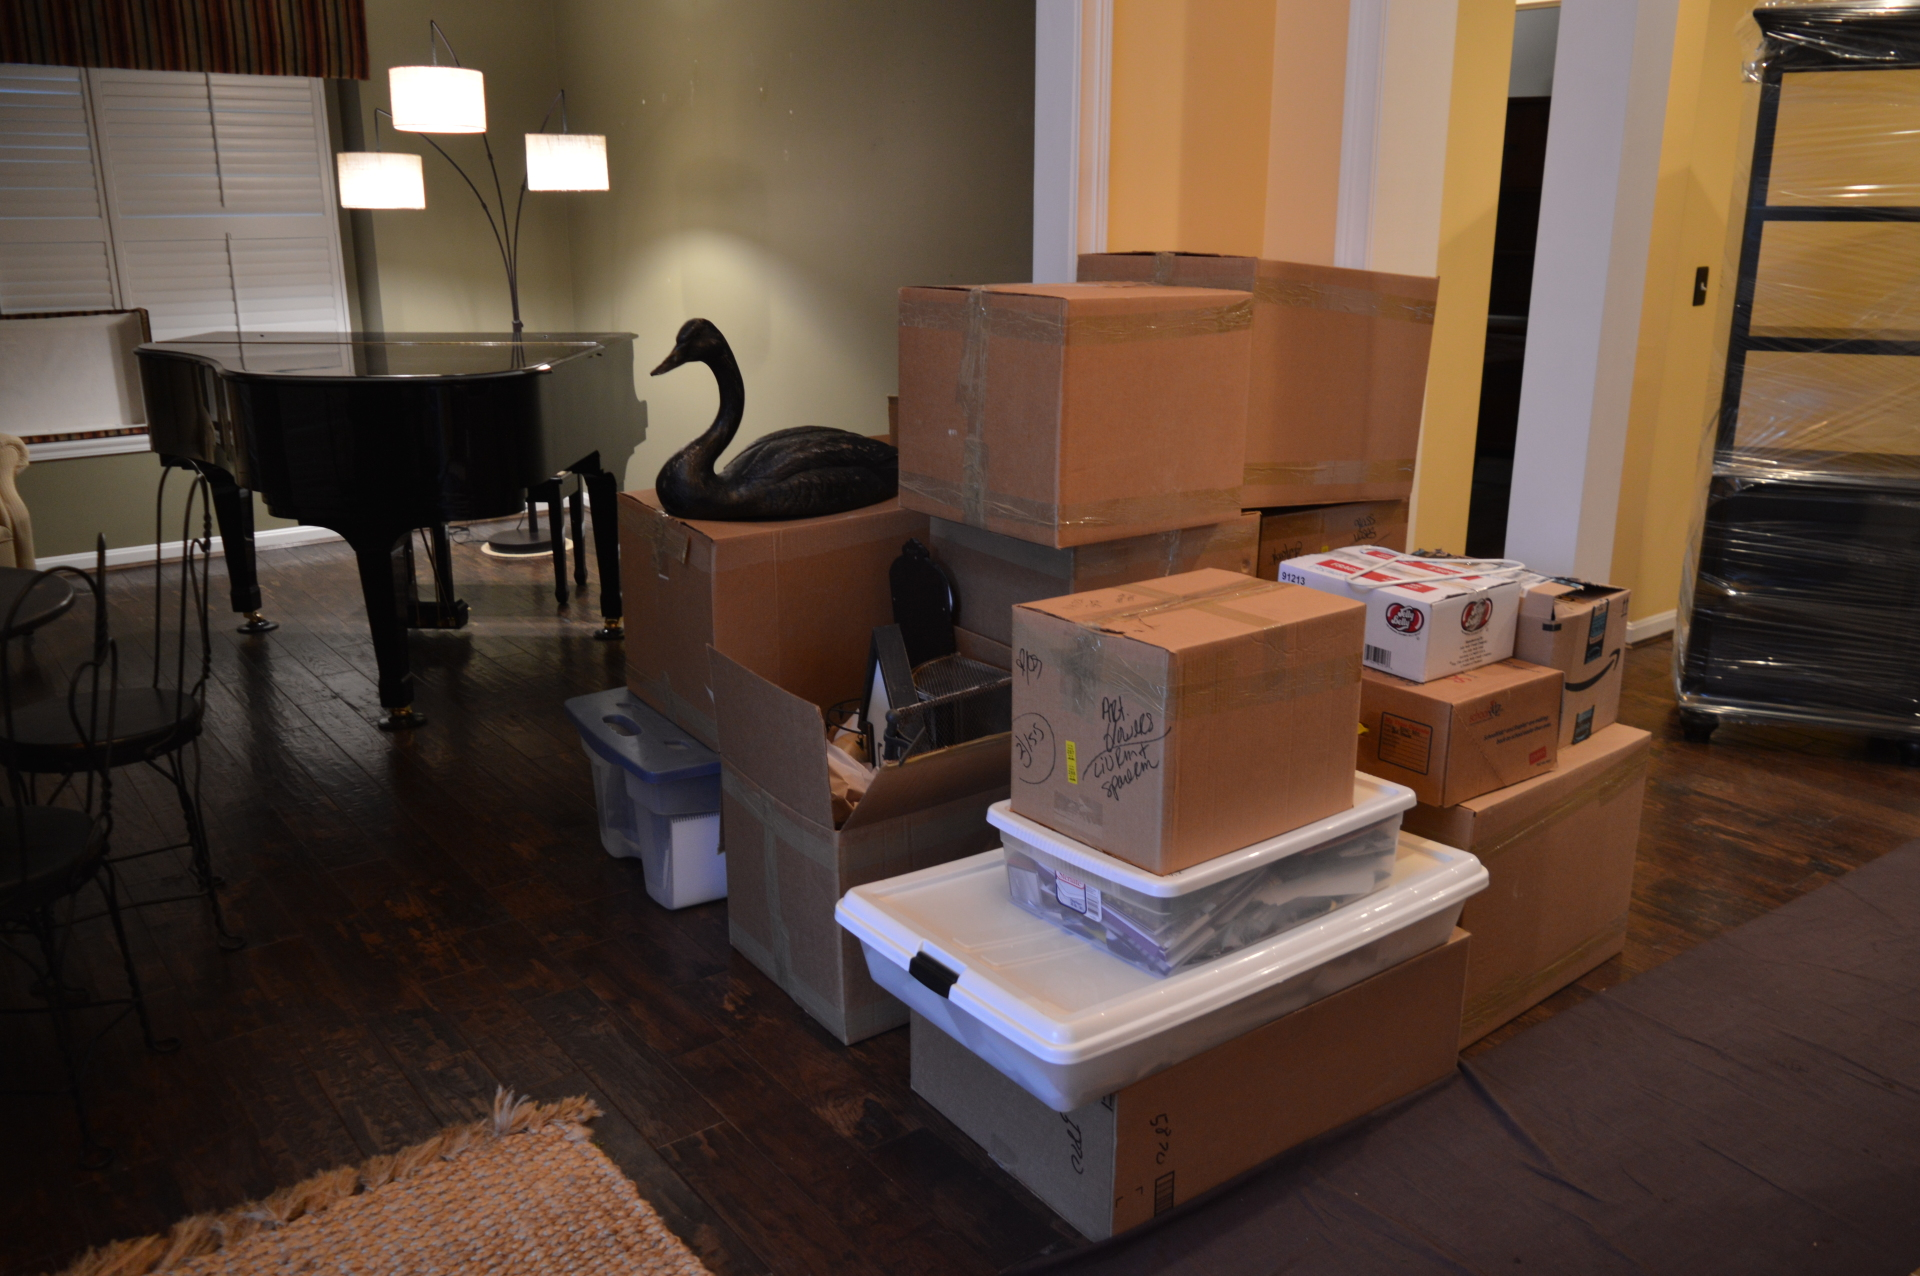 Twenty Packing tips for A Smooth Move